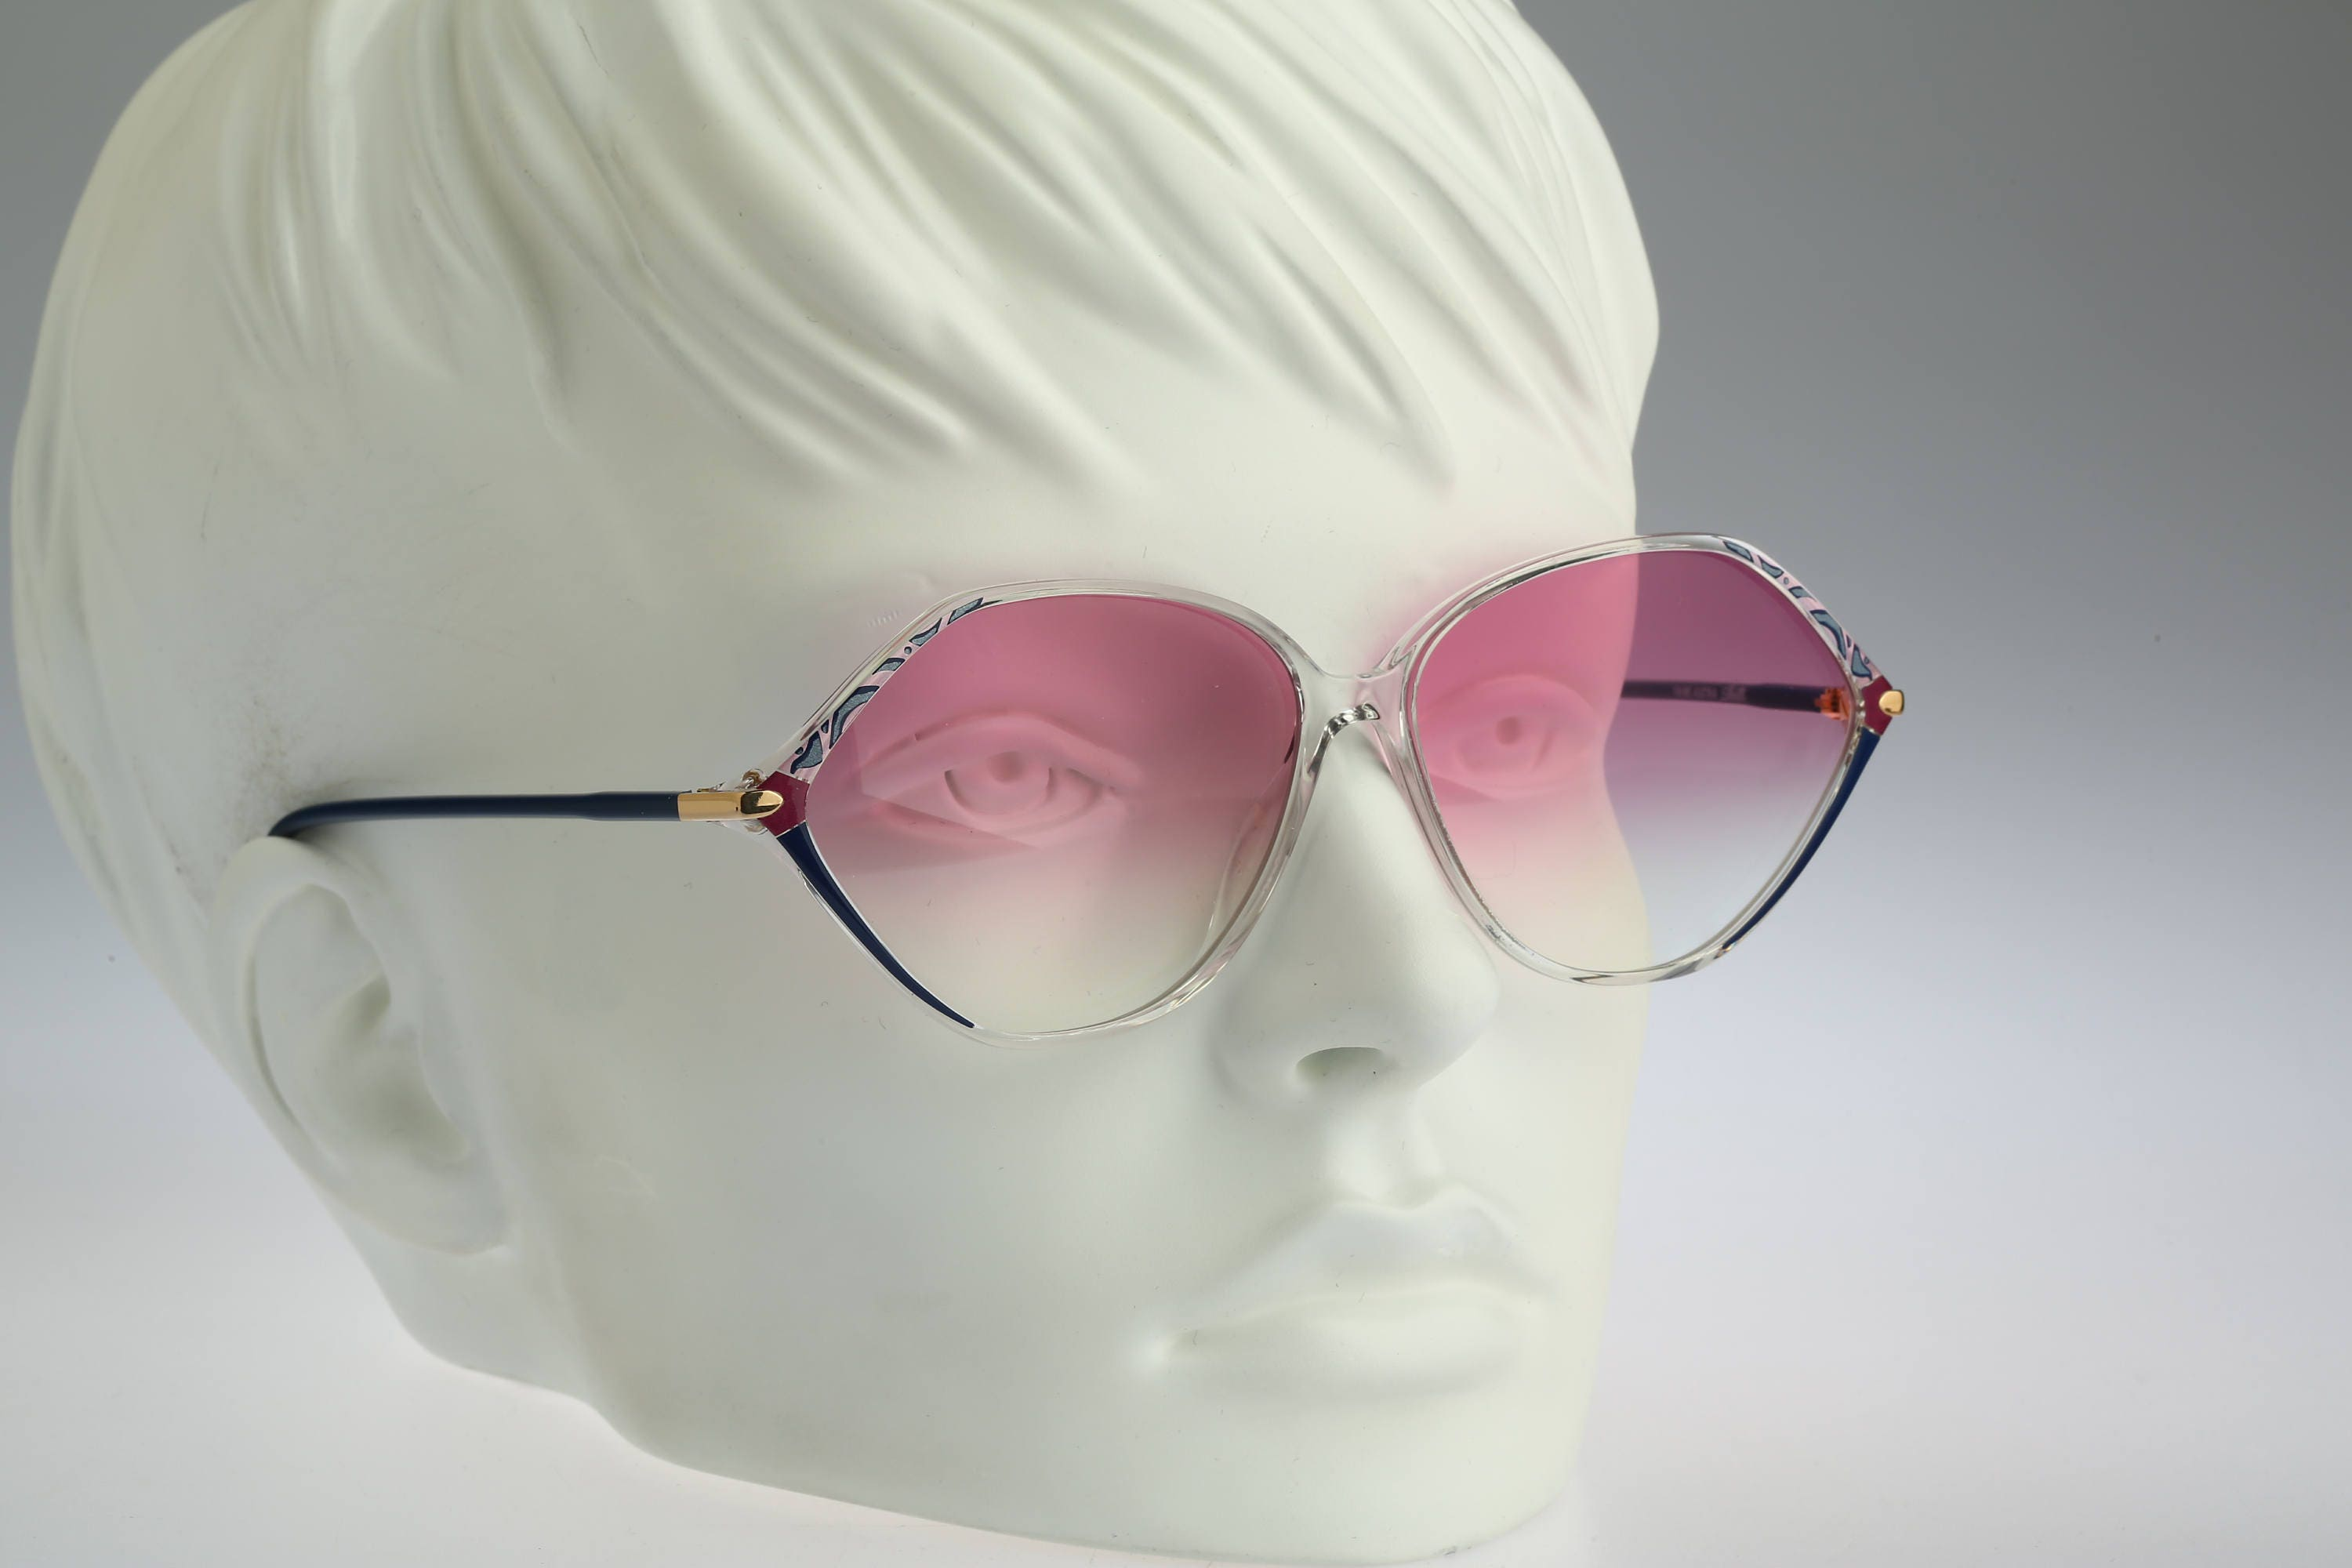 Butterfly sunglasses Silhouette M 1776 C 2195 Vintage 80s